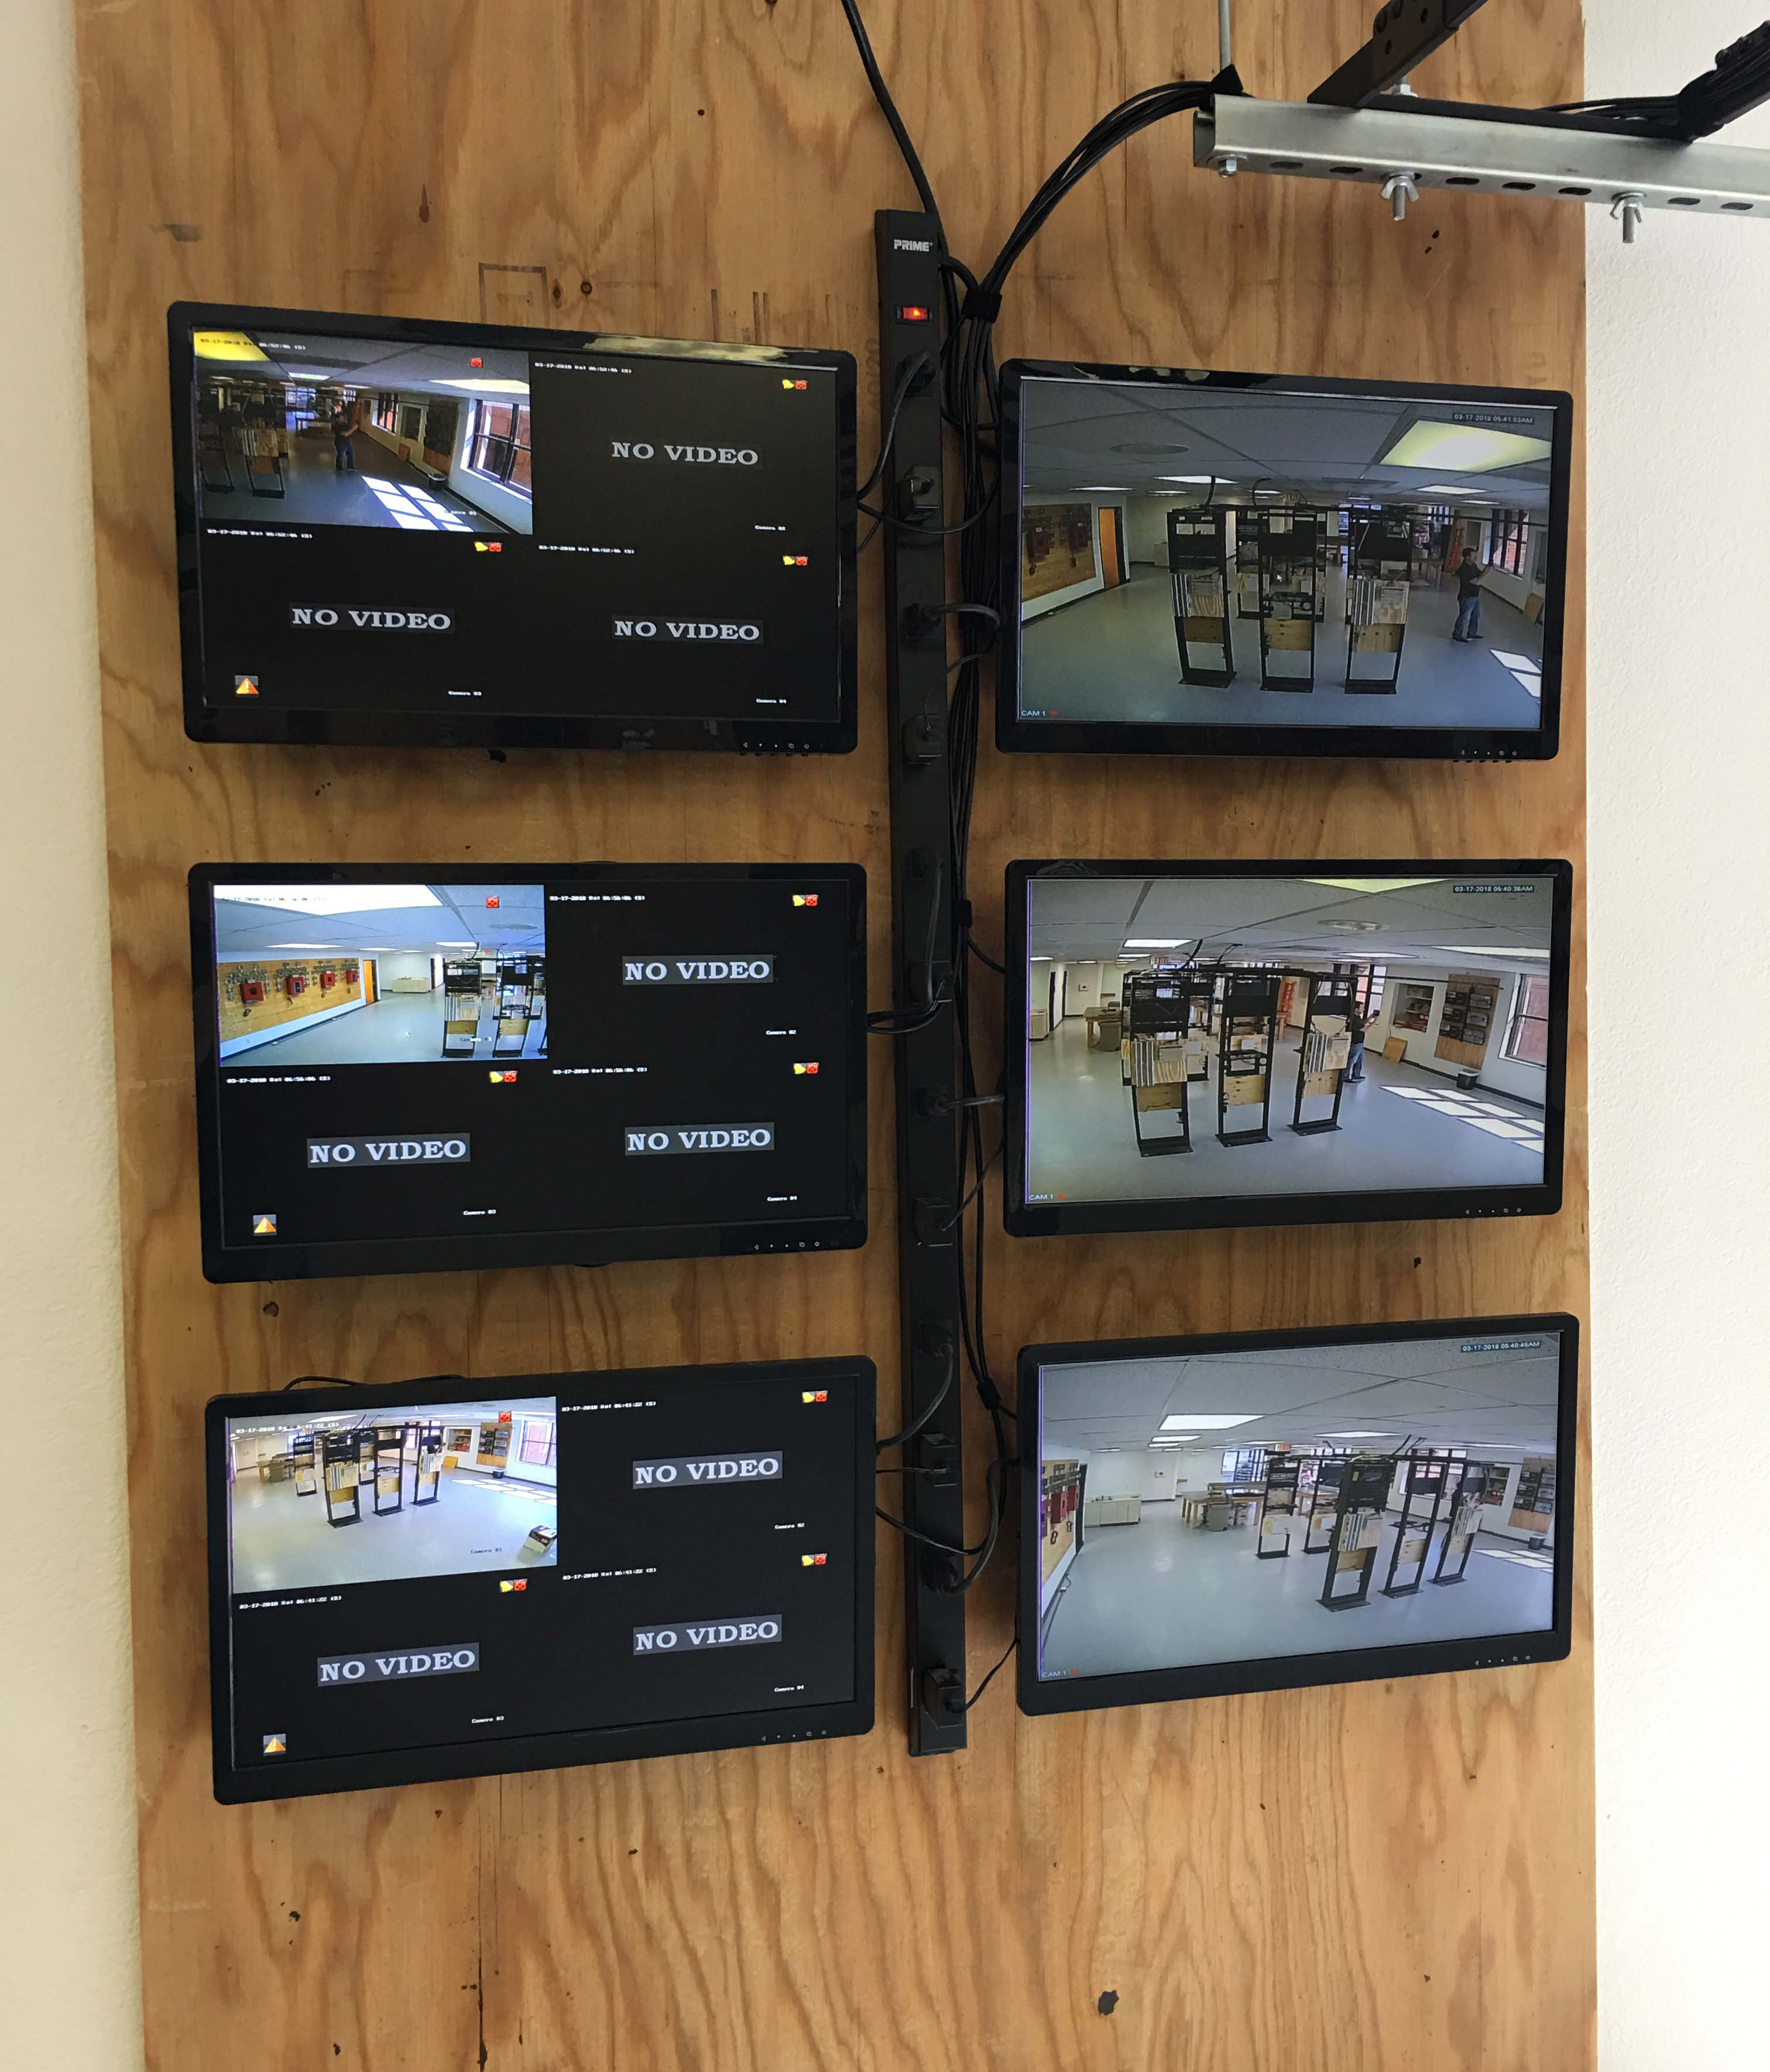 CCTV Monitors at San Diego Training Facility